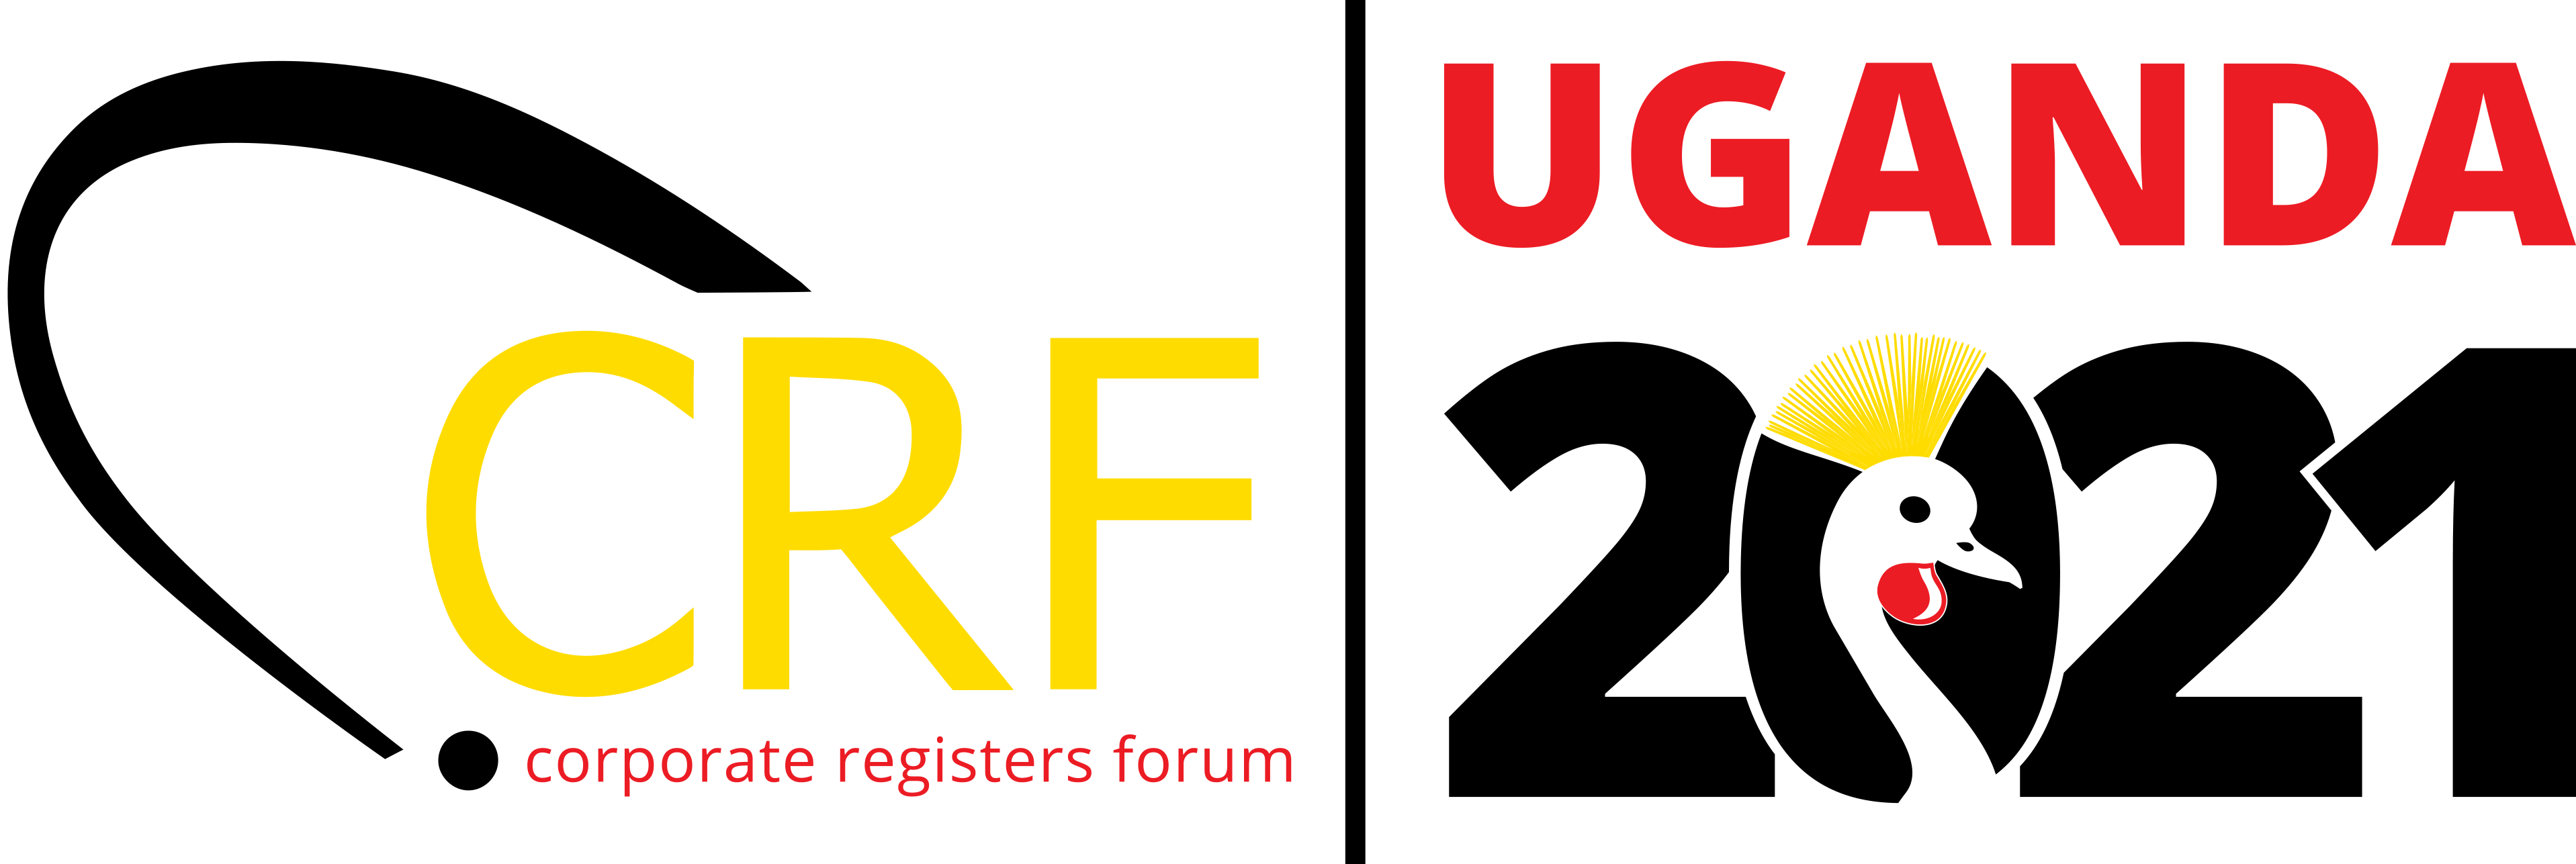 CRF 2021 Conference Logo